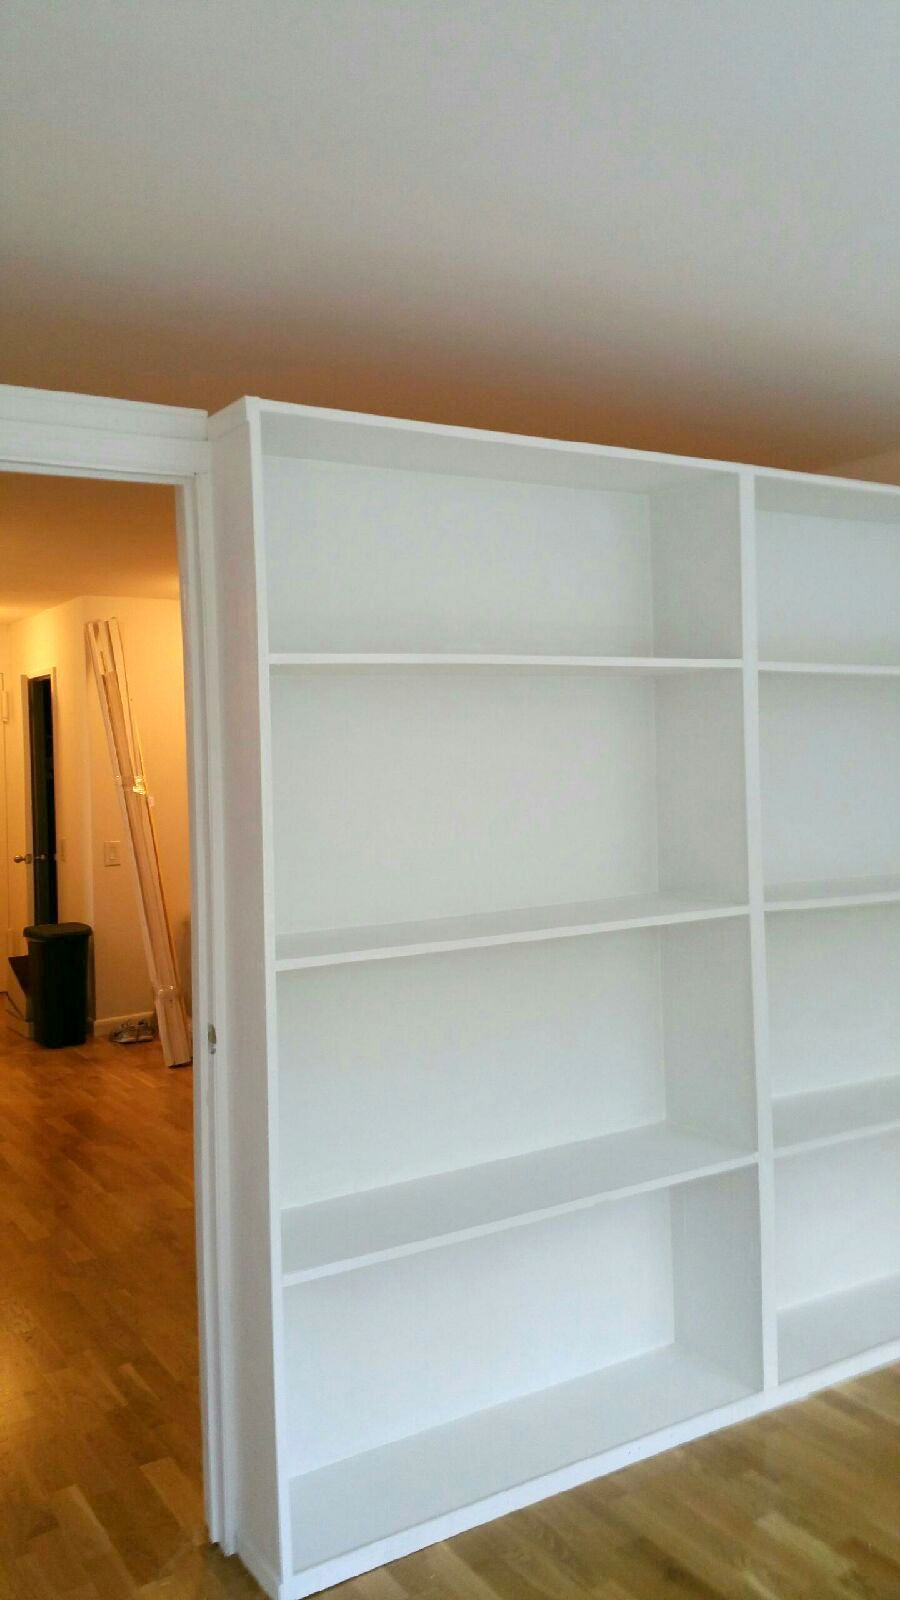 Bookcase Wall With Pocket Door Call Us For All Your Custom Room Partition Inquiries 646 837 7300